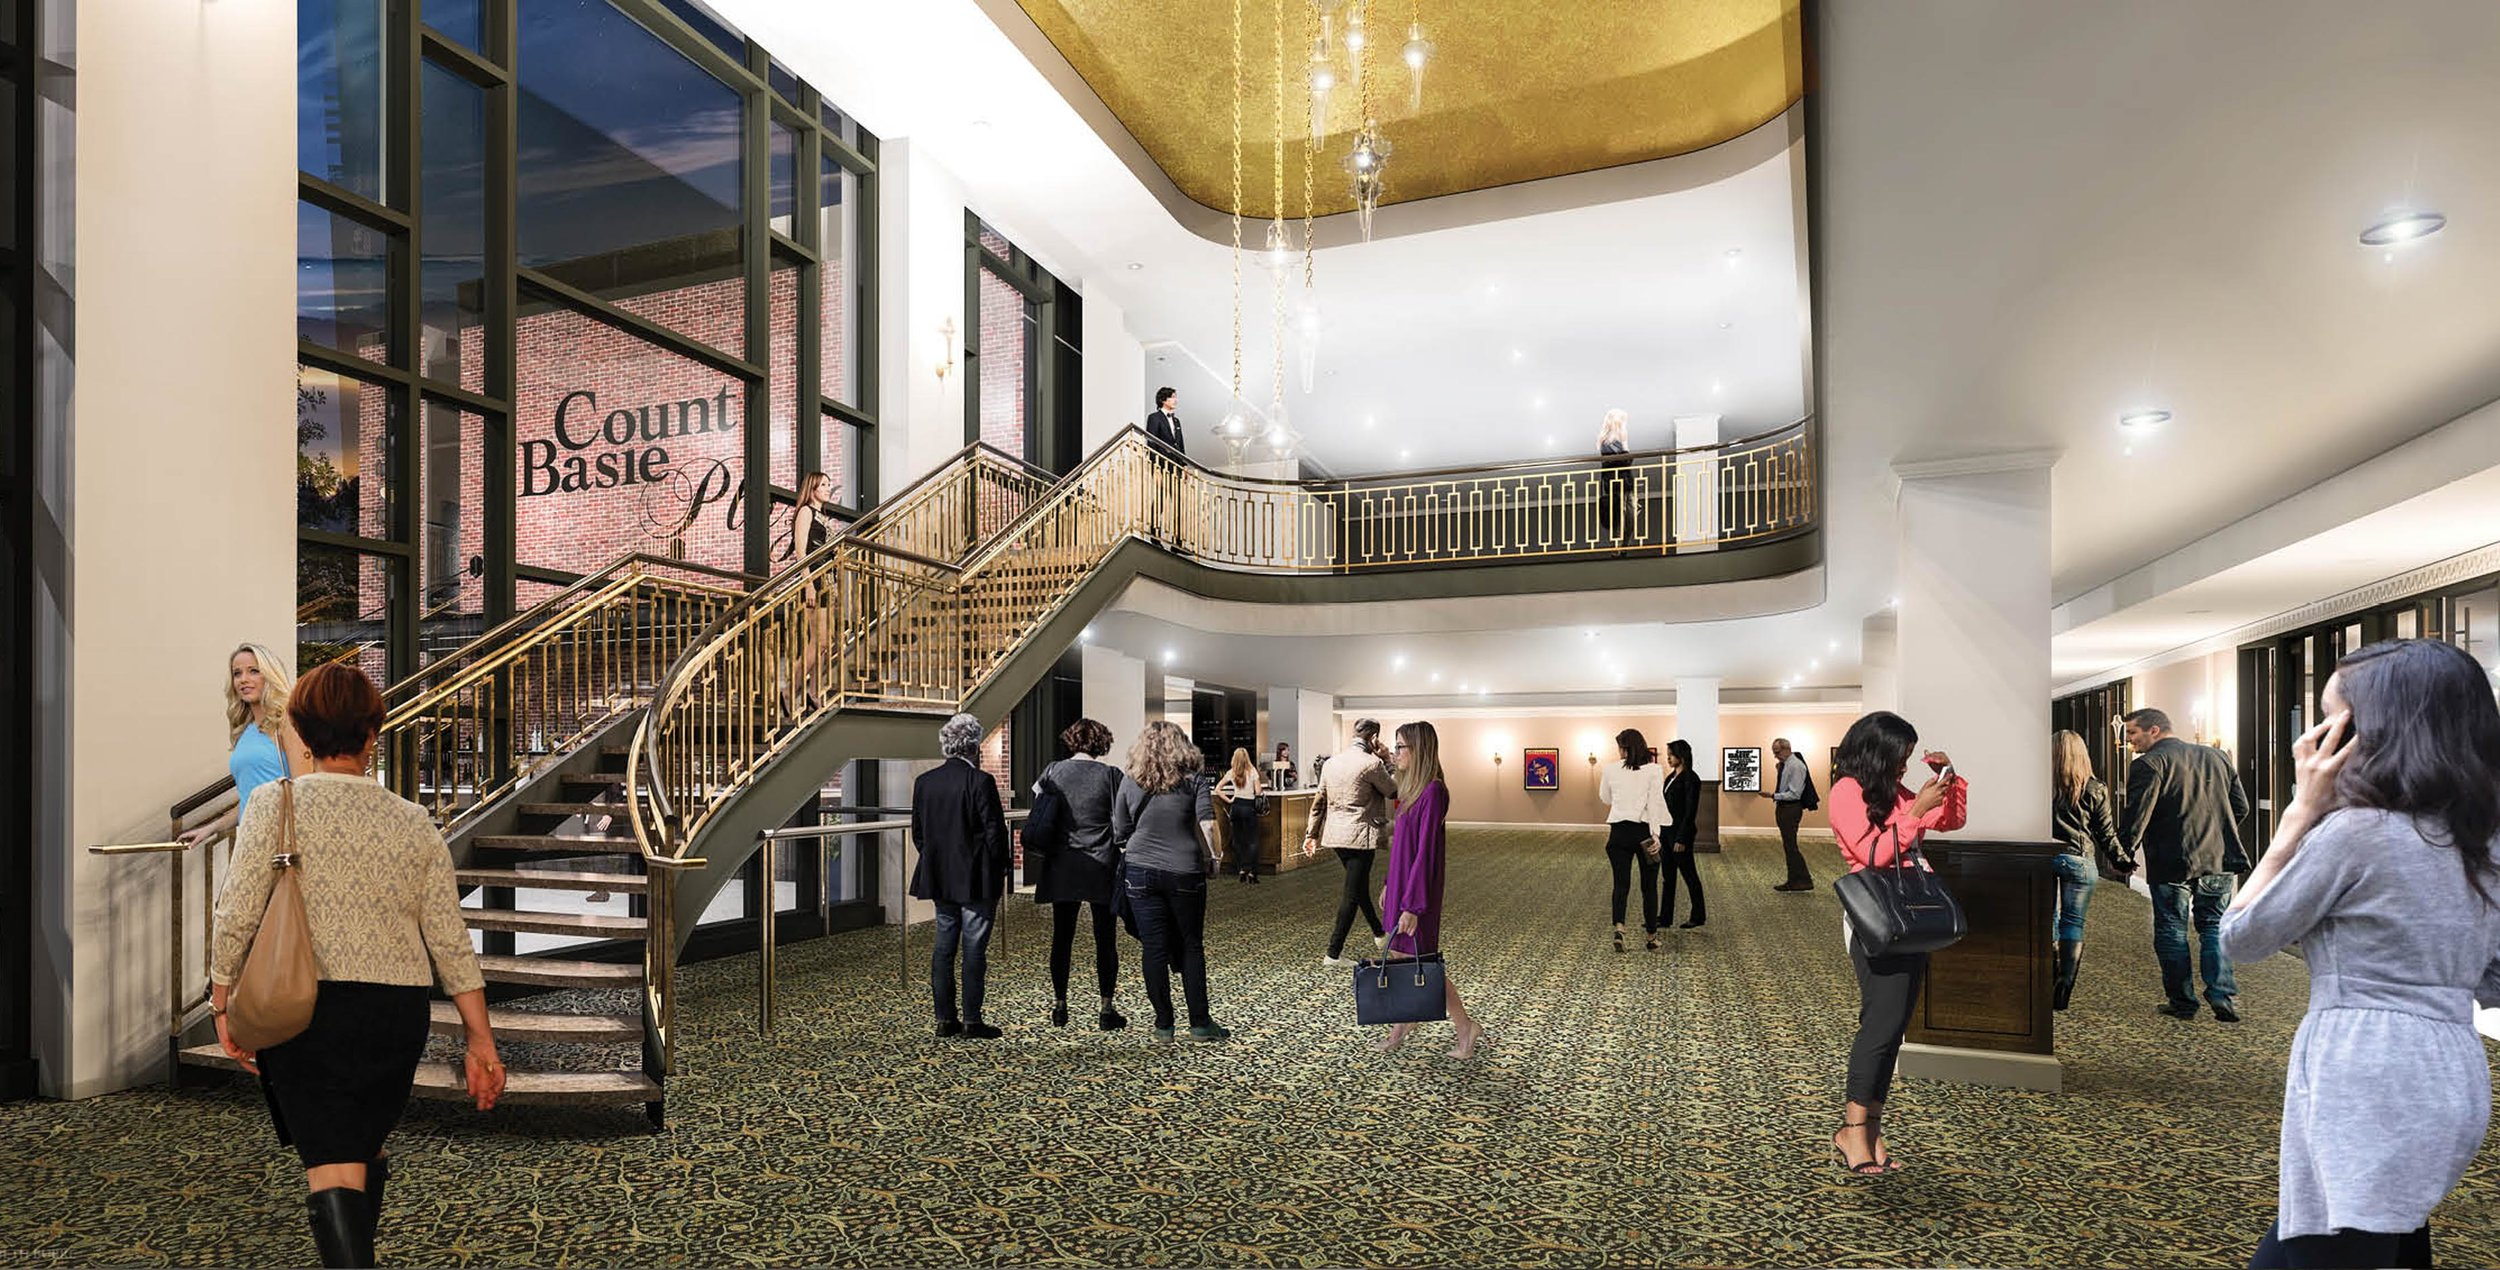 The new Count Basie Theatre lobby